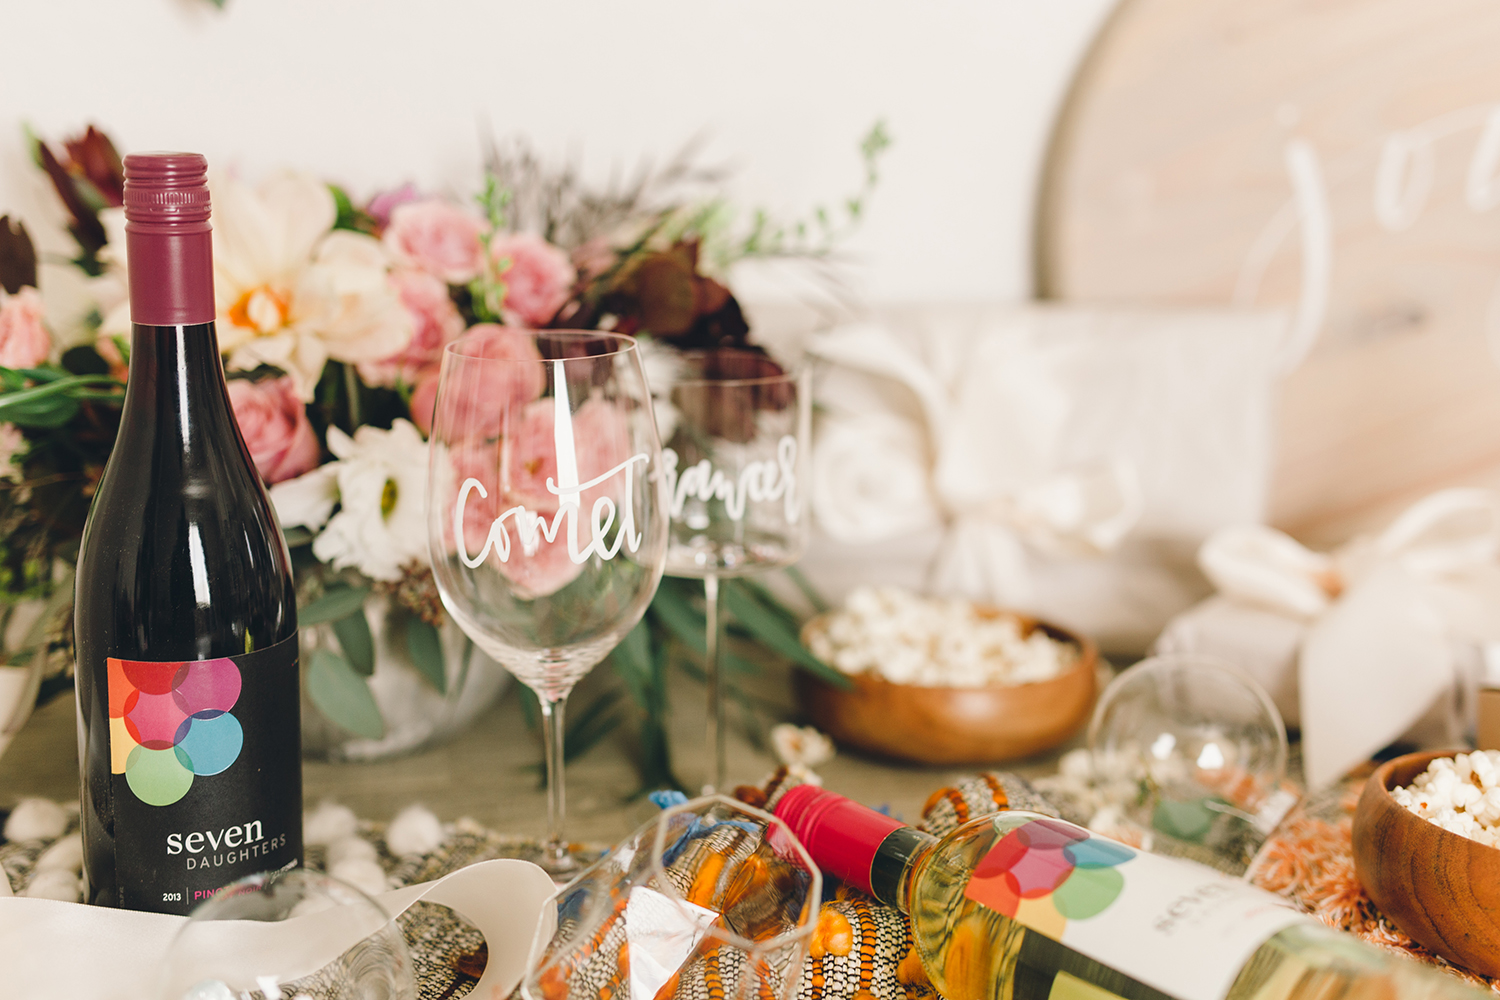 Simple snacks and wine for your holiday party | A Fabulous Fete